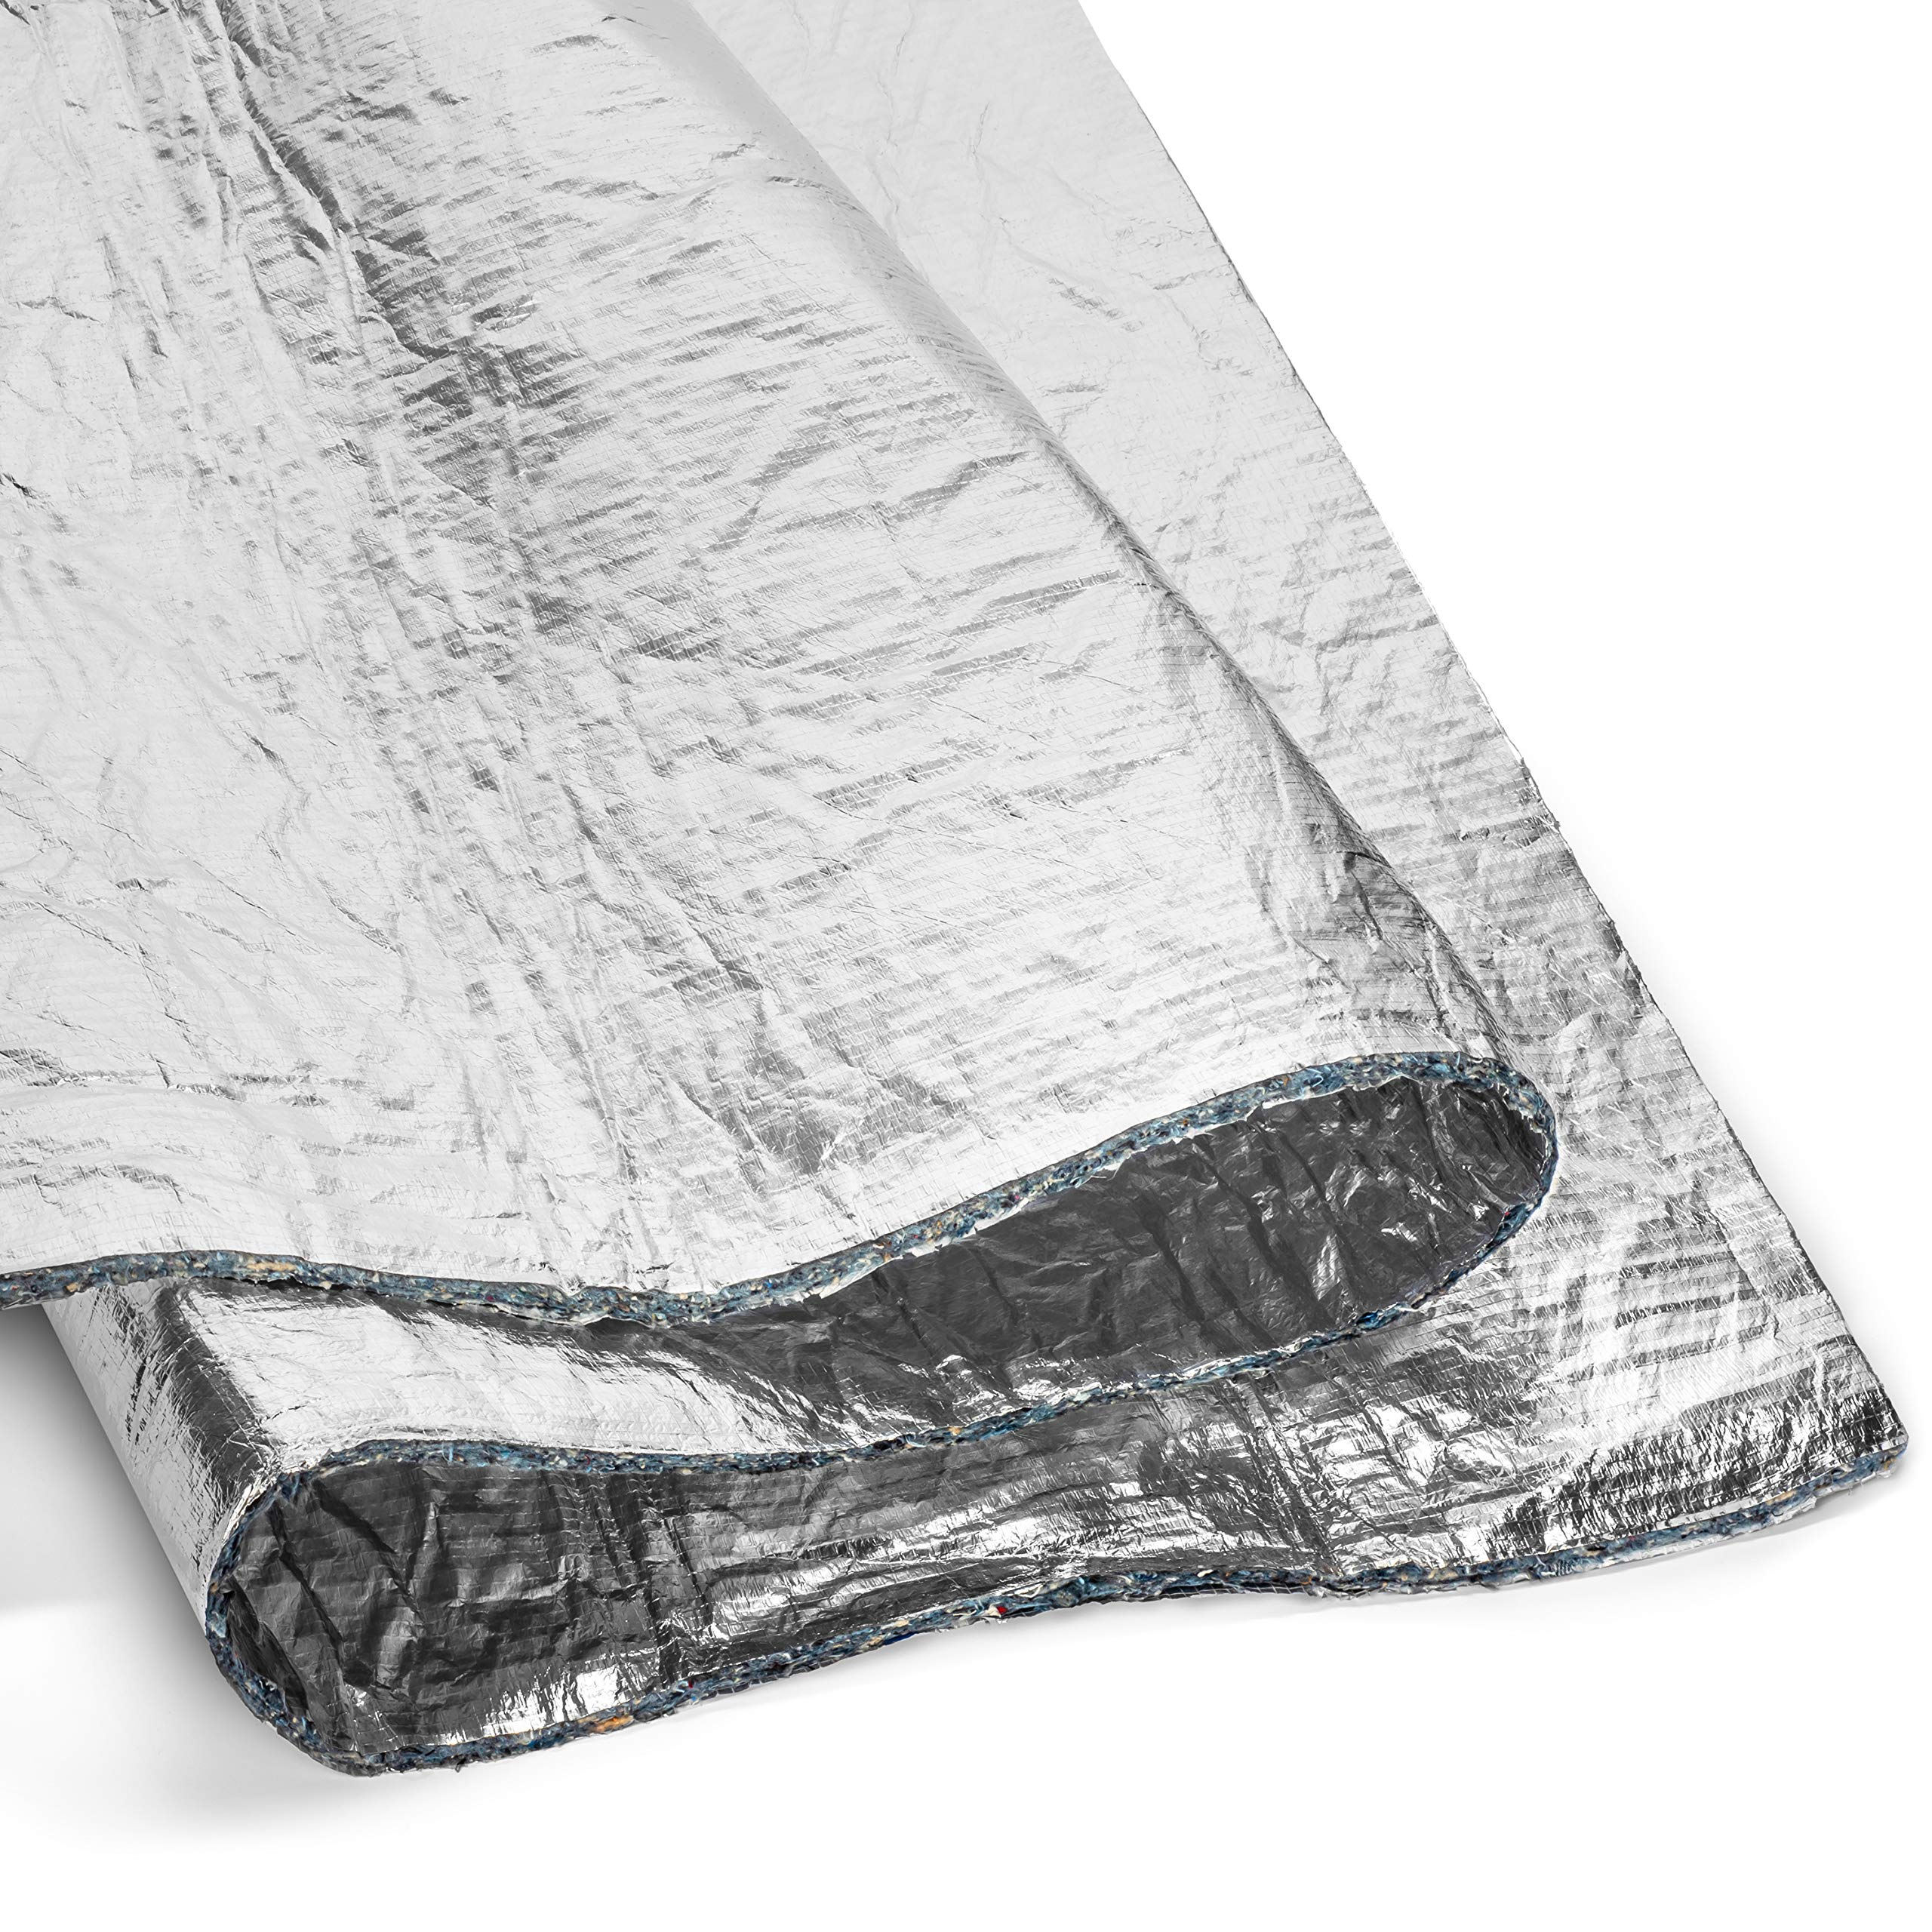 Second Skin Heat Wave Pro - Jute with Aluminized Heat Barrier - High R-Value Headliner and Hood Insulation for Cars (3/8'' Thick, 24 Sq Ft)